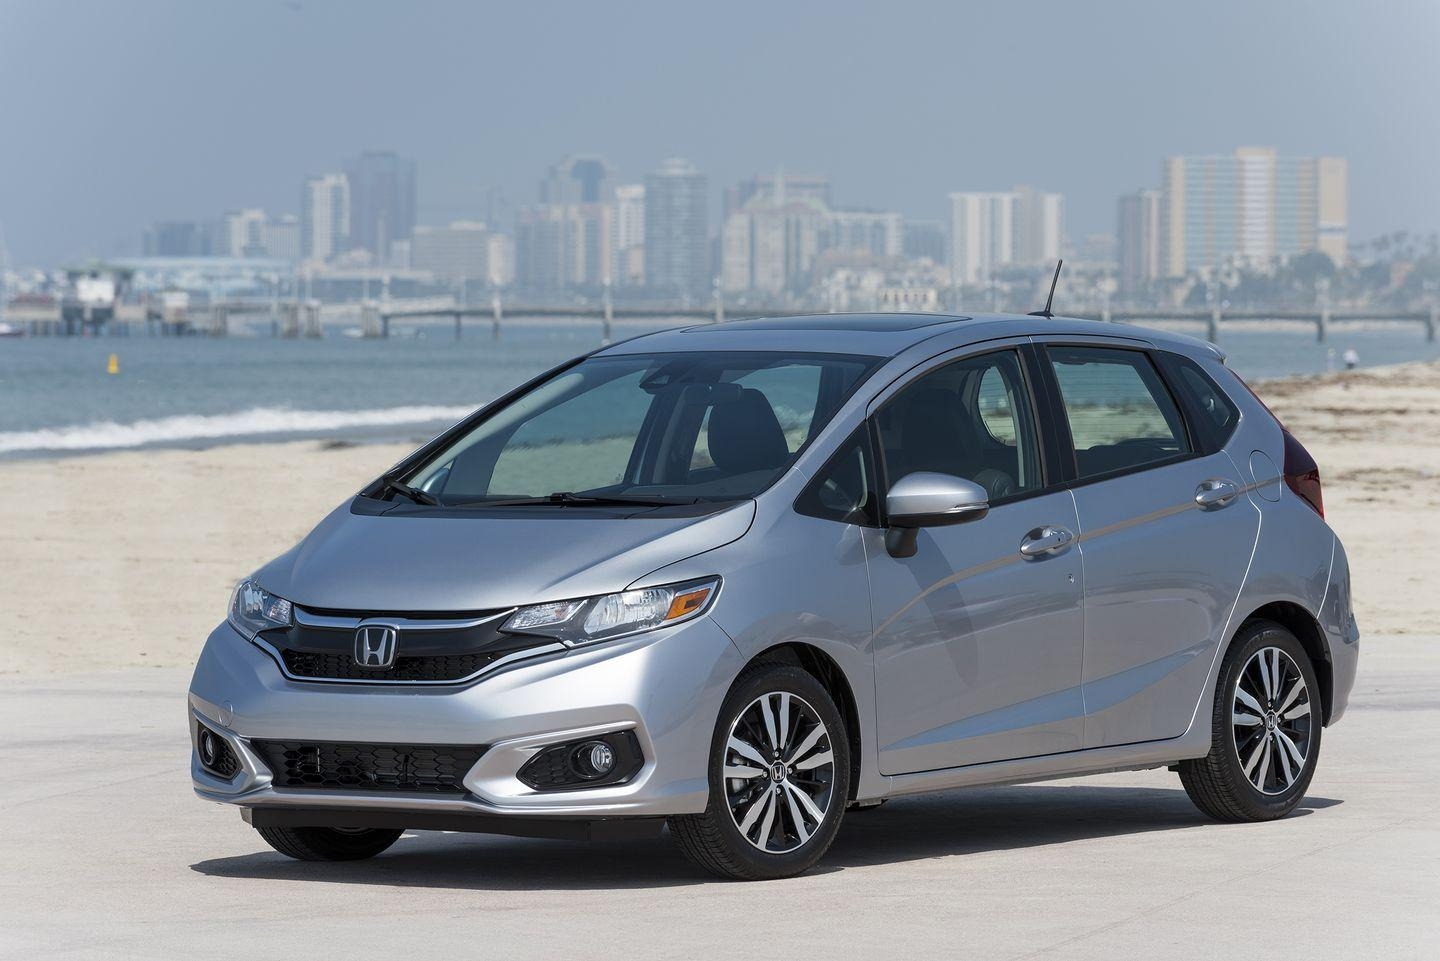 """<p>The <a href=""""https://www.caranddriver.com/honda/fit"""" rel=""""nofollow noopener"""" target=""""_blank"""" data-ylk=""""slk:Honda Fit"""" class=""""link rapid-noclick-resp"""">Honda Fit</a> is starting to show its age, but it remains a compelling contender with proven reliability. Honda puts useful features in every Fit, things like Bluetooth compatibility and LED brake lights. The Fit has a surprisingly spacious back seat and offers more cargo space than you'd expect in a car its size. The Fit comes with a three-year or 36,000-mile warranty on all its models, but offers a five-year or 60,000-mile powertrain warranty with three years or 36,000 miles of roadside assistance specifically for the Fit.</p>"""